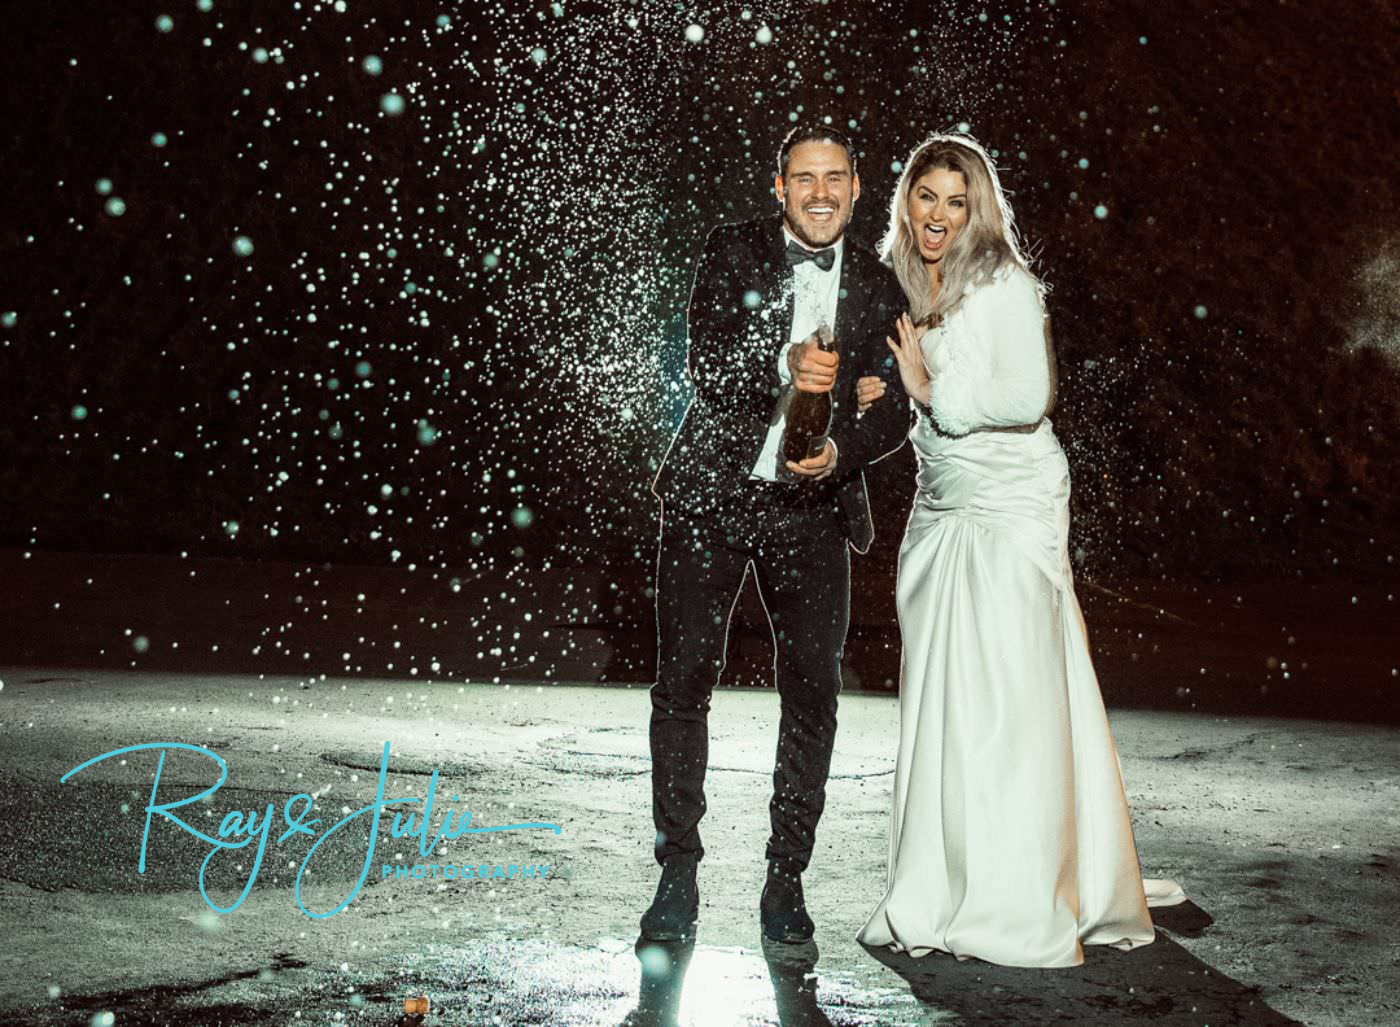 A newley married couple celebrating by popping a bottle of champagne